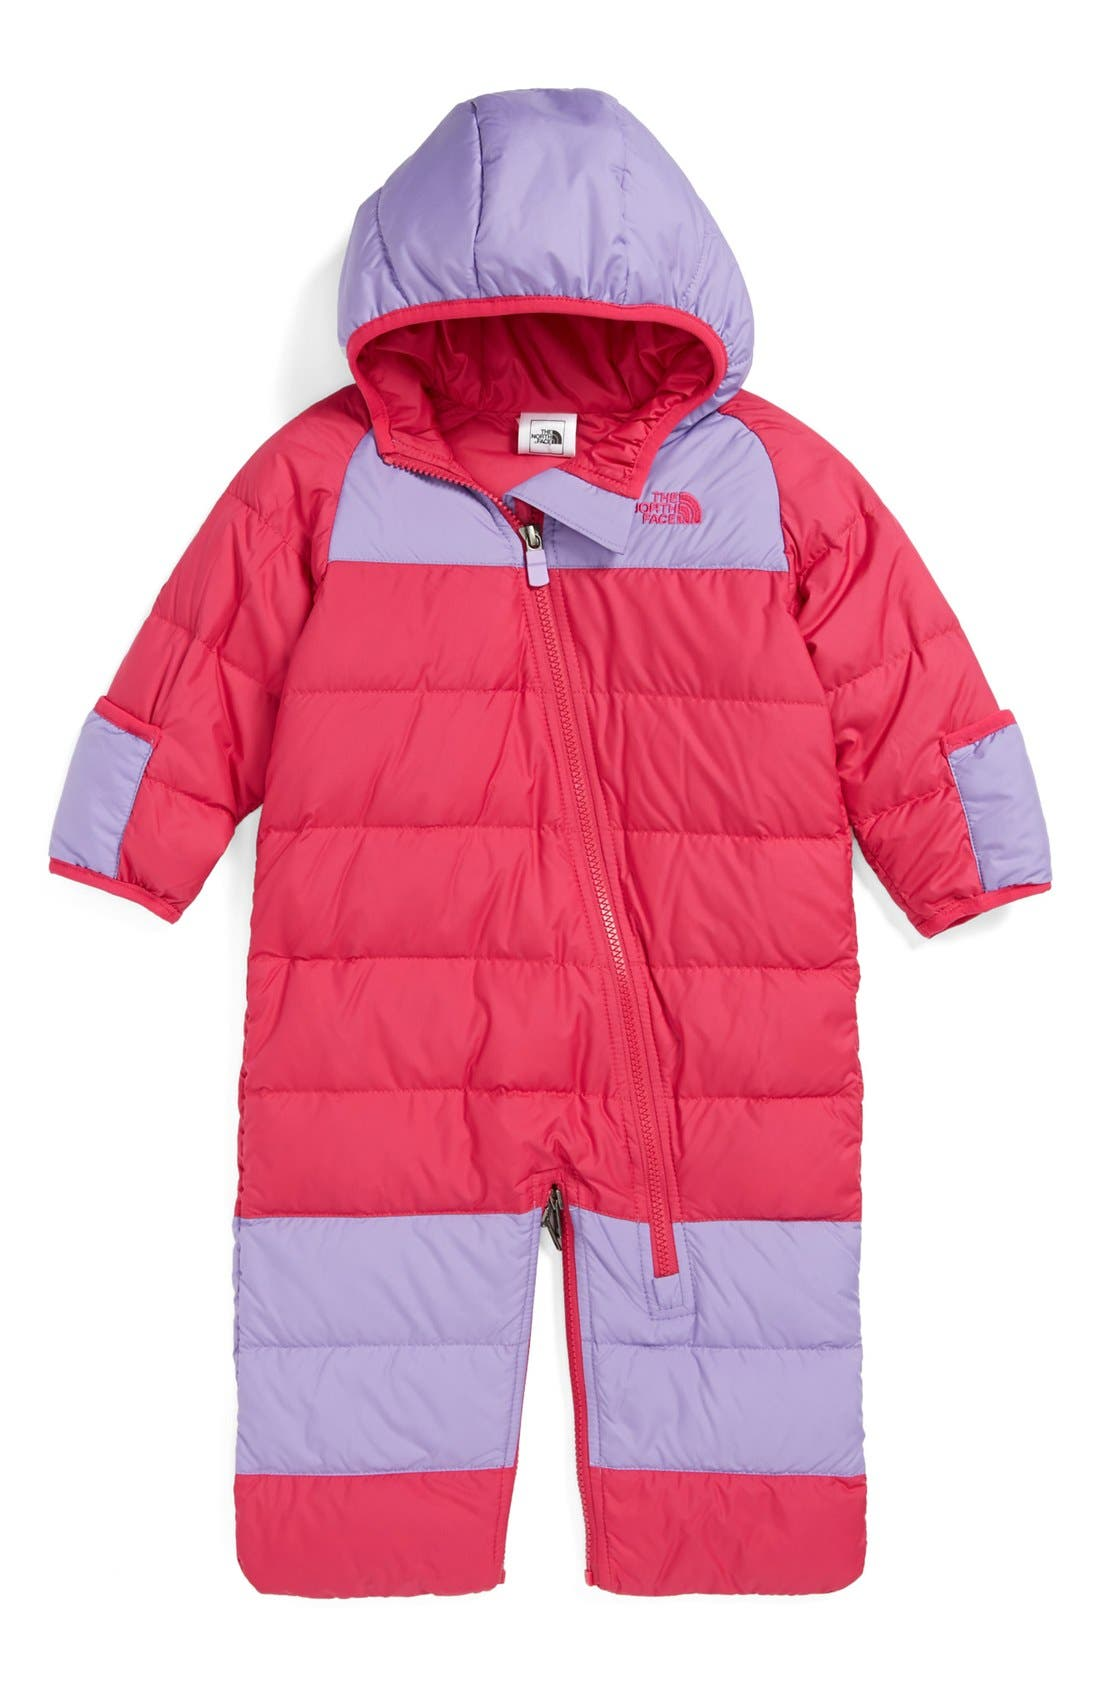 Main Image - The North Face 'Lil' Snuggler' Down Bunting (Baby Girls)